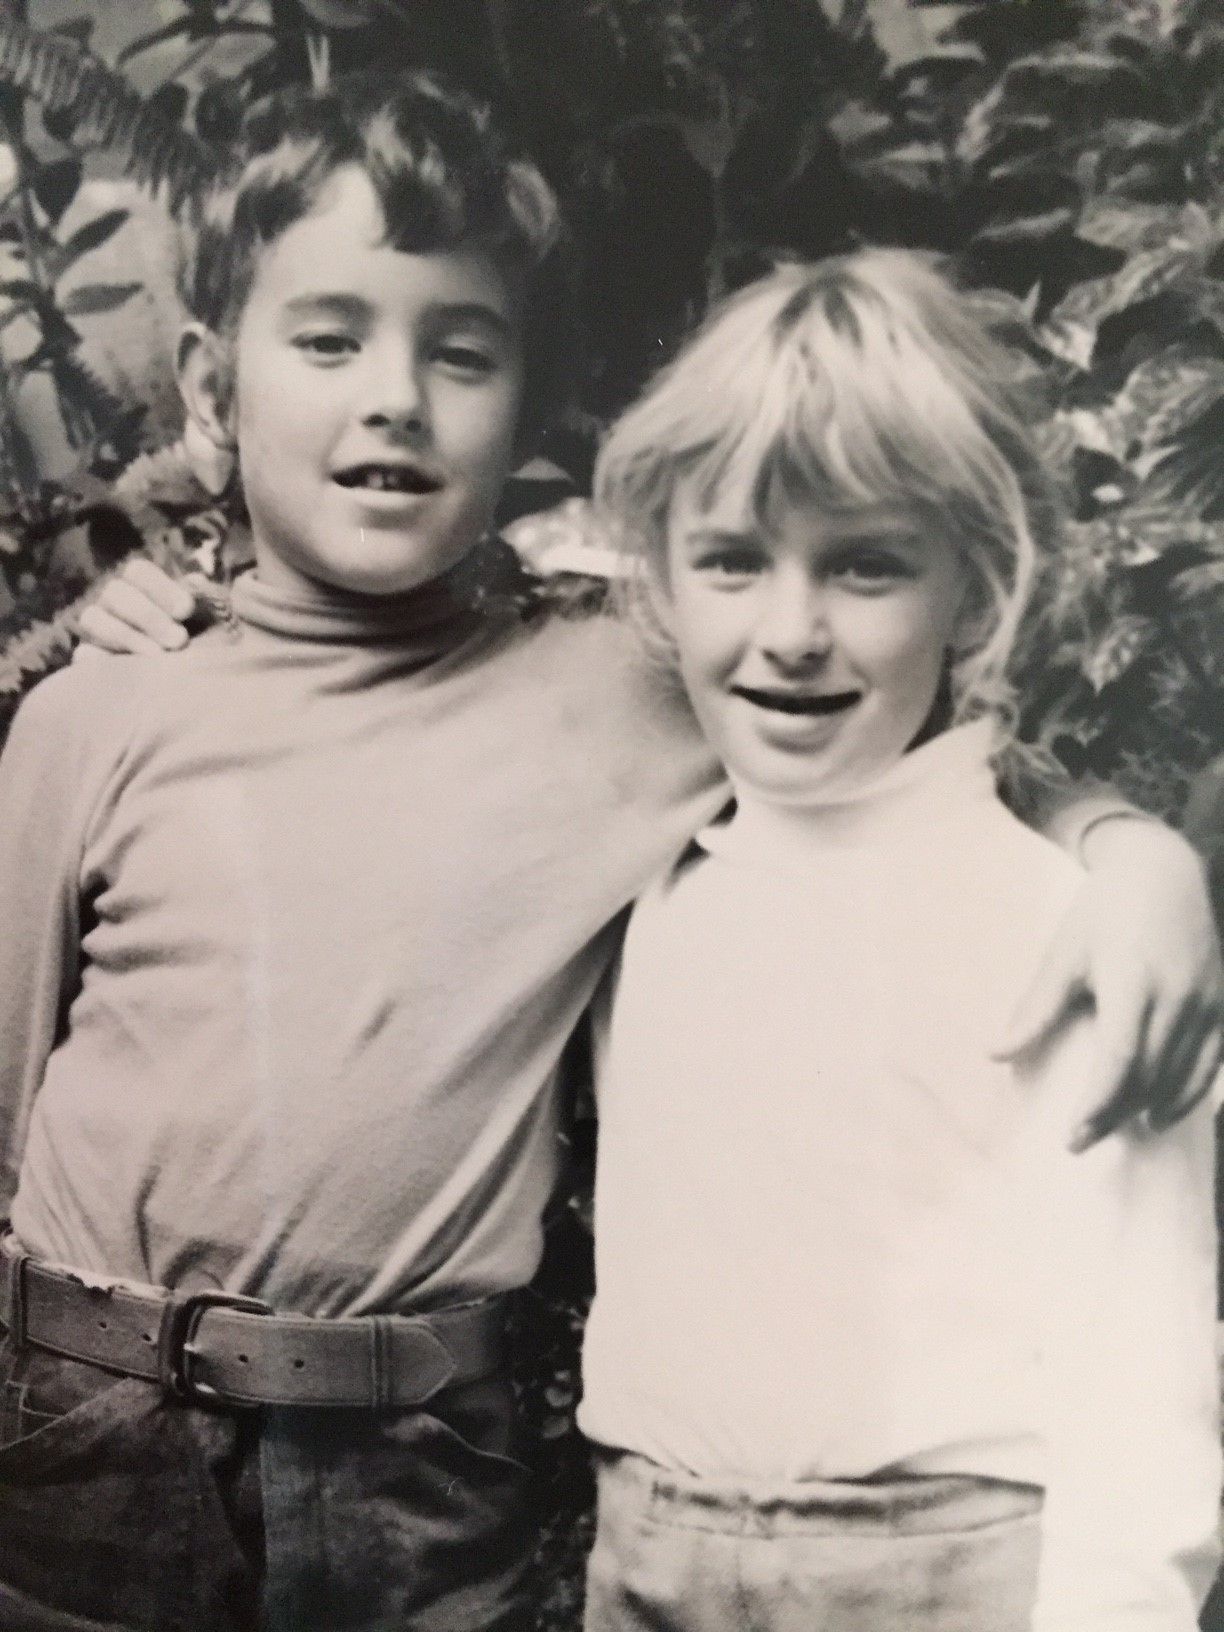 Yes, that's me on the right, my brother on the left. Not only were we energetic and creative children, we were total fashion icons. Long live the tucked-in skivvy!  The elasticised waist band, by the way, was stylish while proving quite flexible for tree climbing and parachuting.